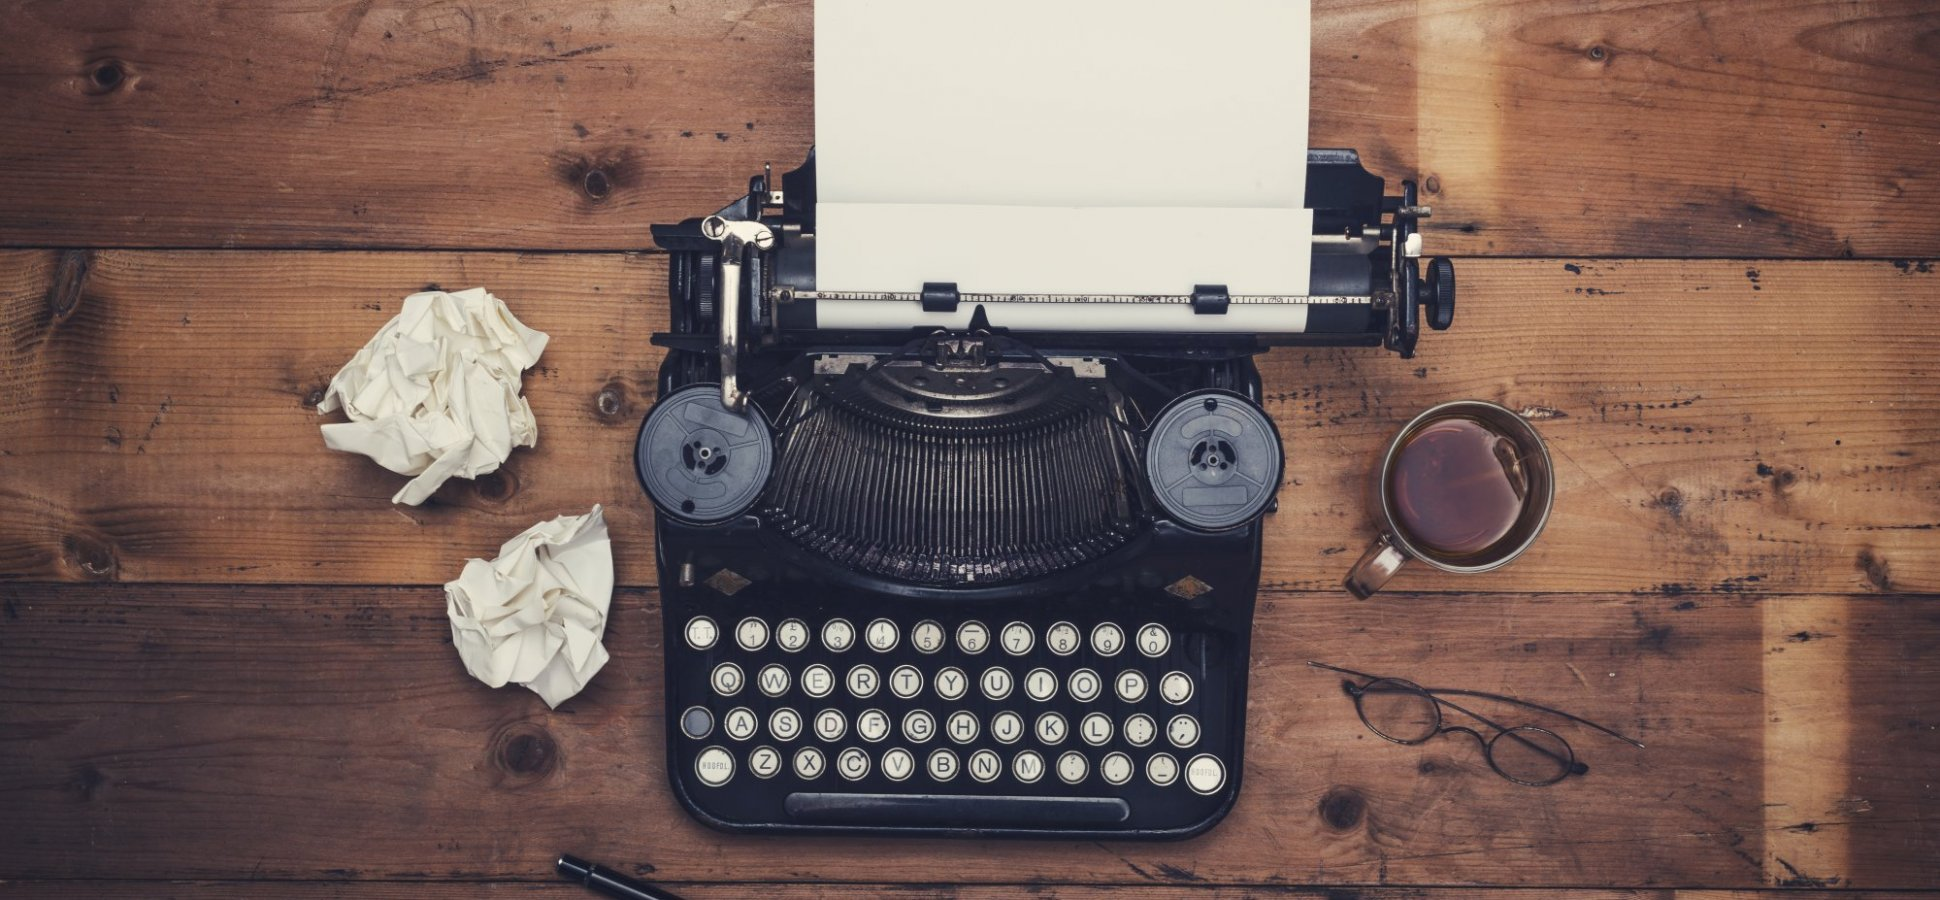 Want to Write a Book? Here Are 5 Powerfully Effective Ways to Find the Time You Need to Do It